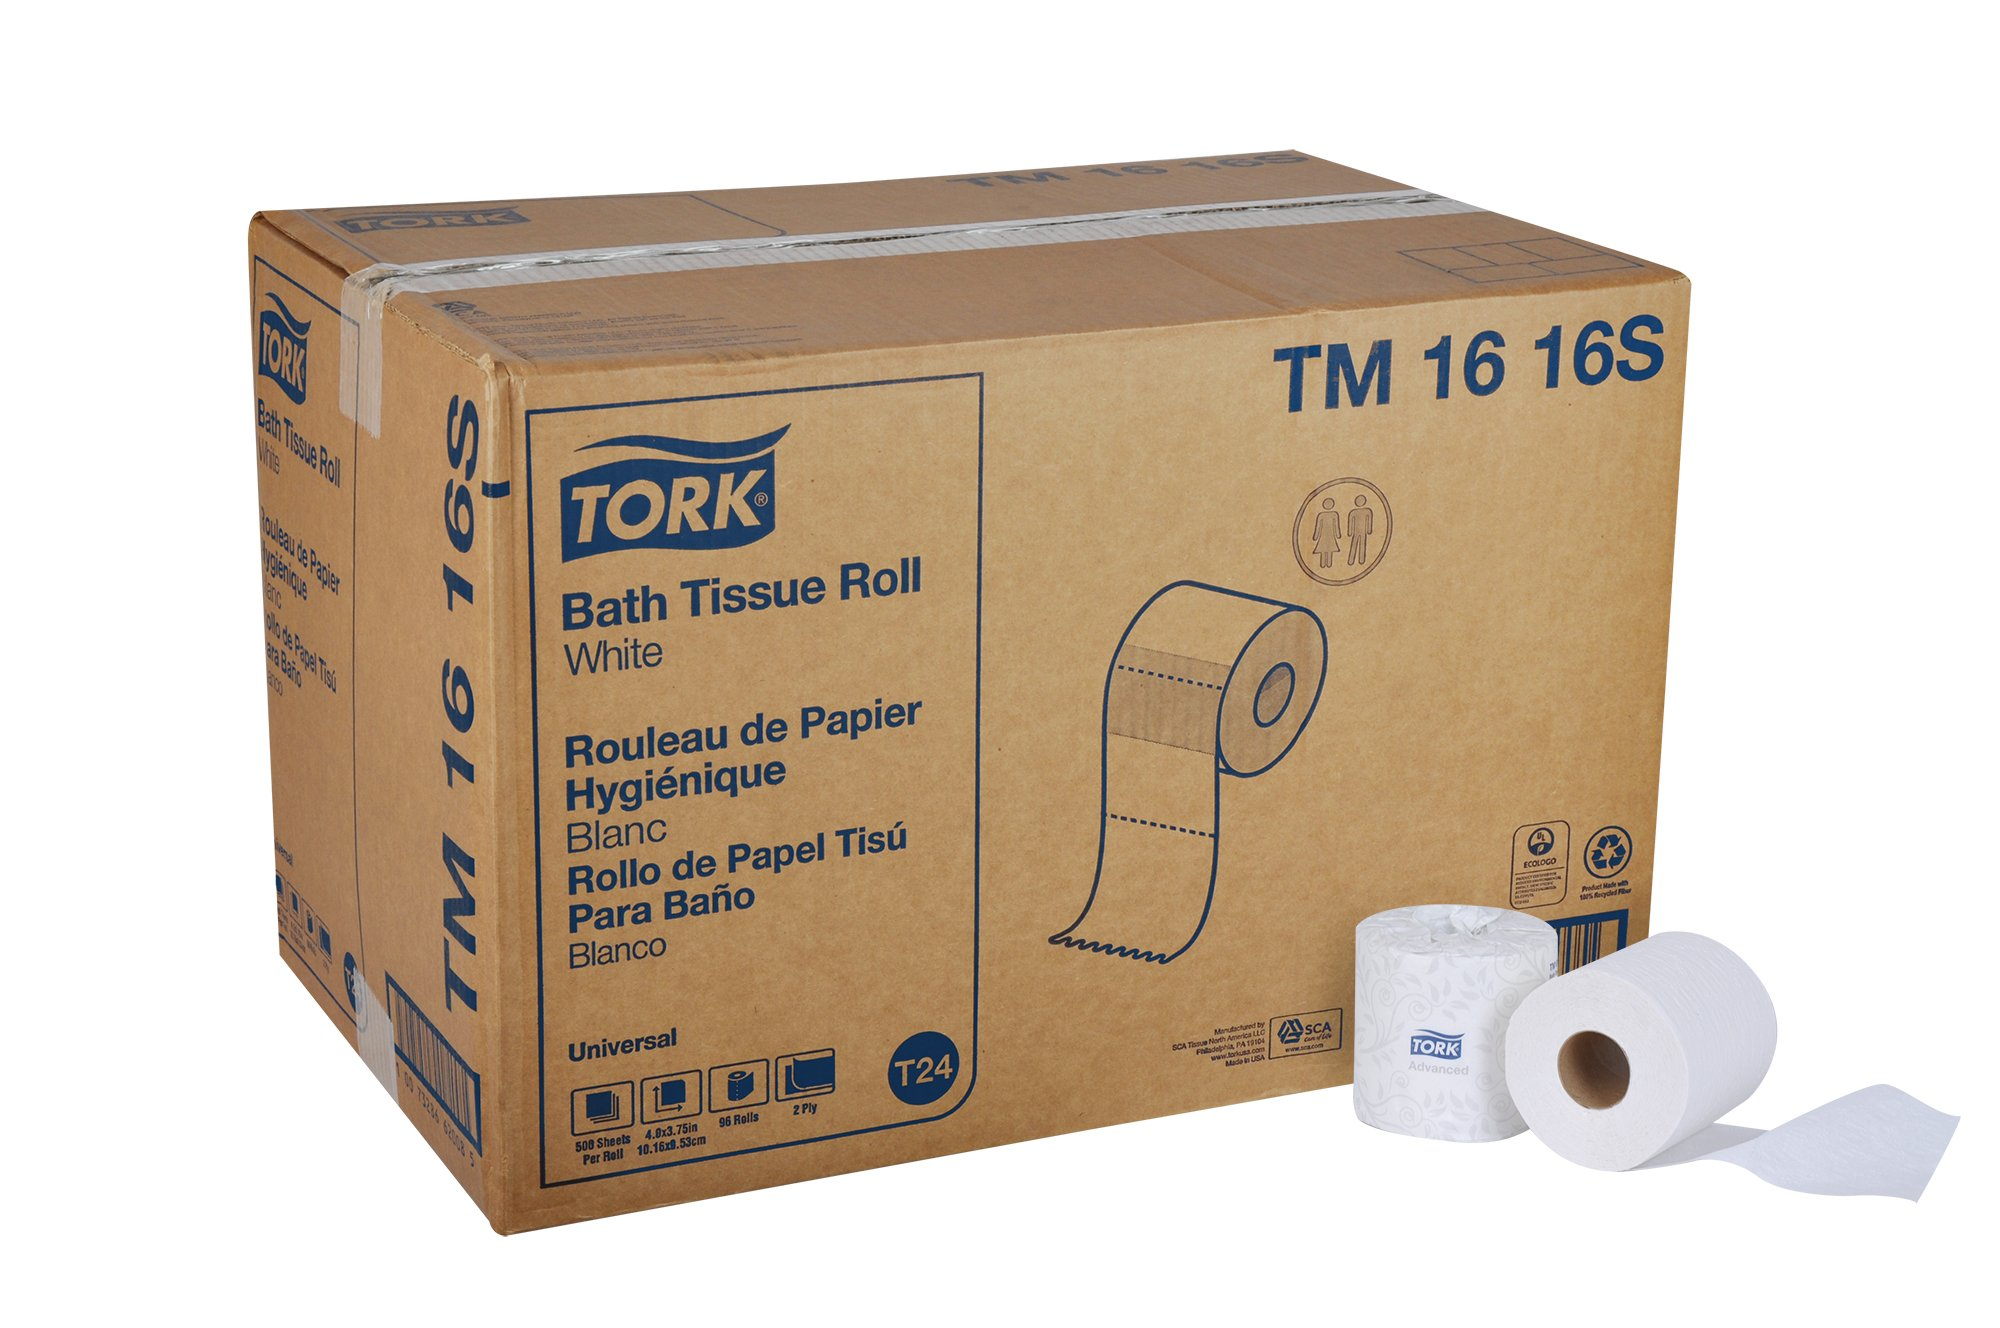 Tork Universal TM1616S Bath Tissue Roll, 2-Ply, 4'' Width x 3.75'' Length, White (Case of 96 Rolls, 500 per Roll, 48,000 Sheets)